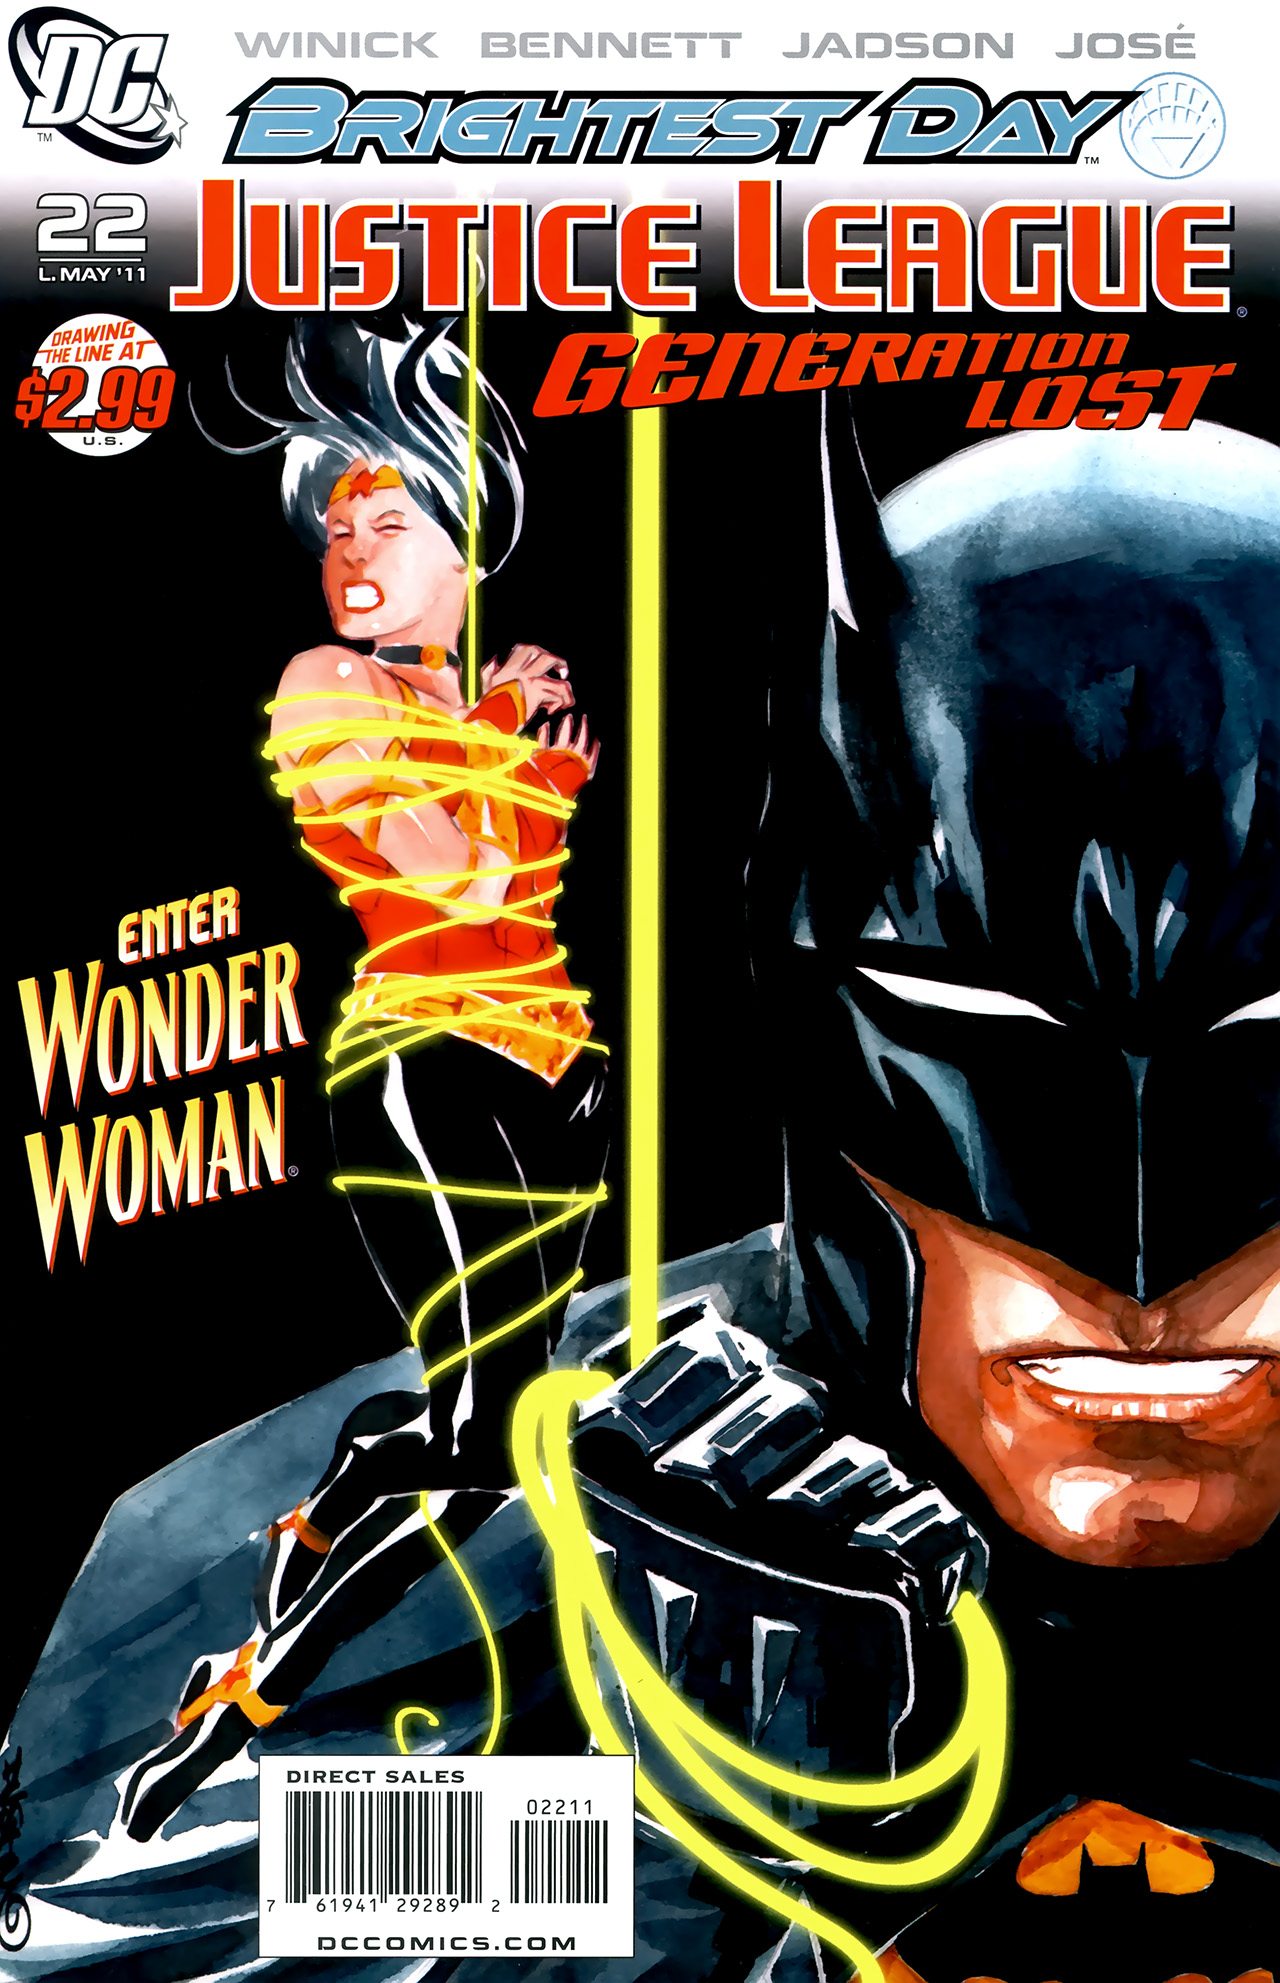 Read online Justice League: Generation Lost comic -  Issue #22 - 1